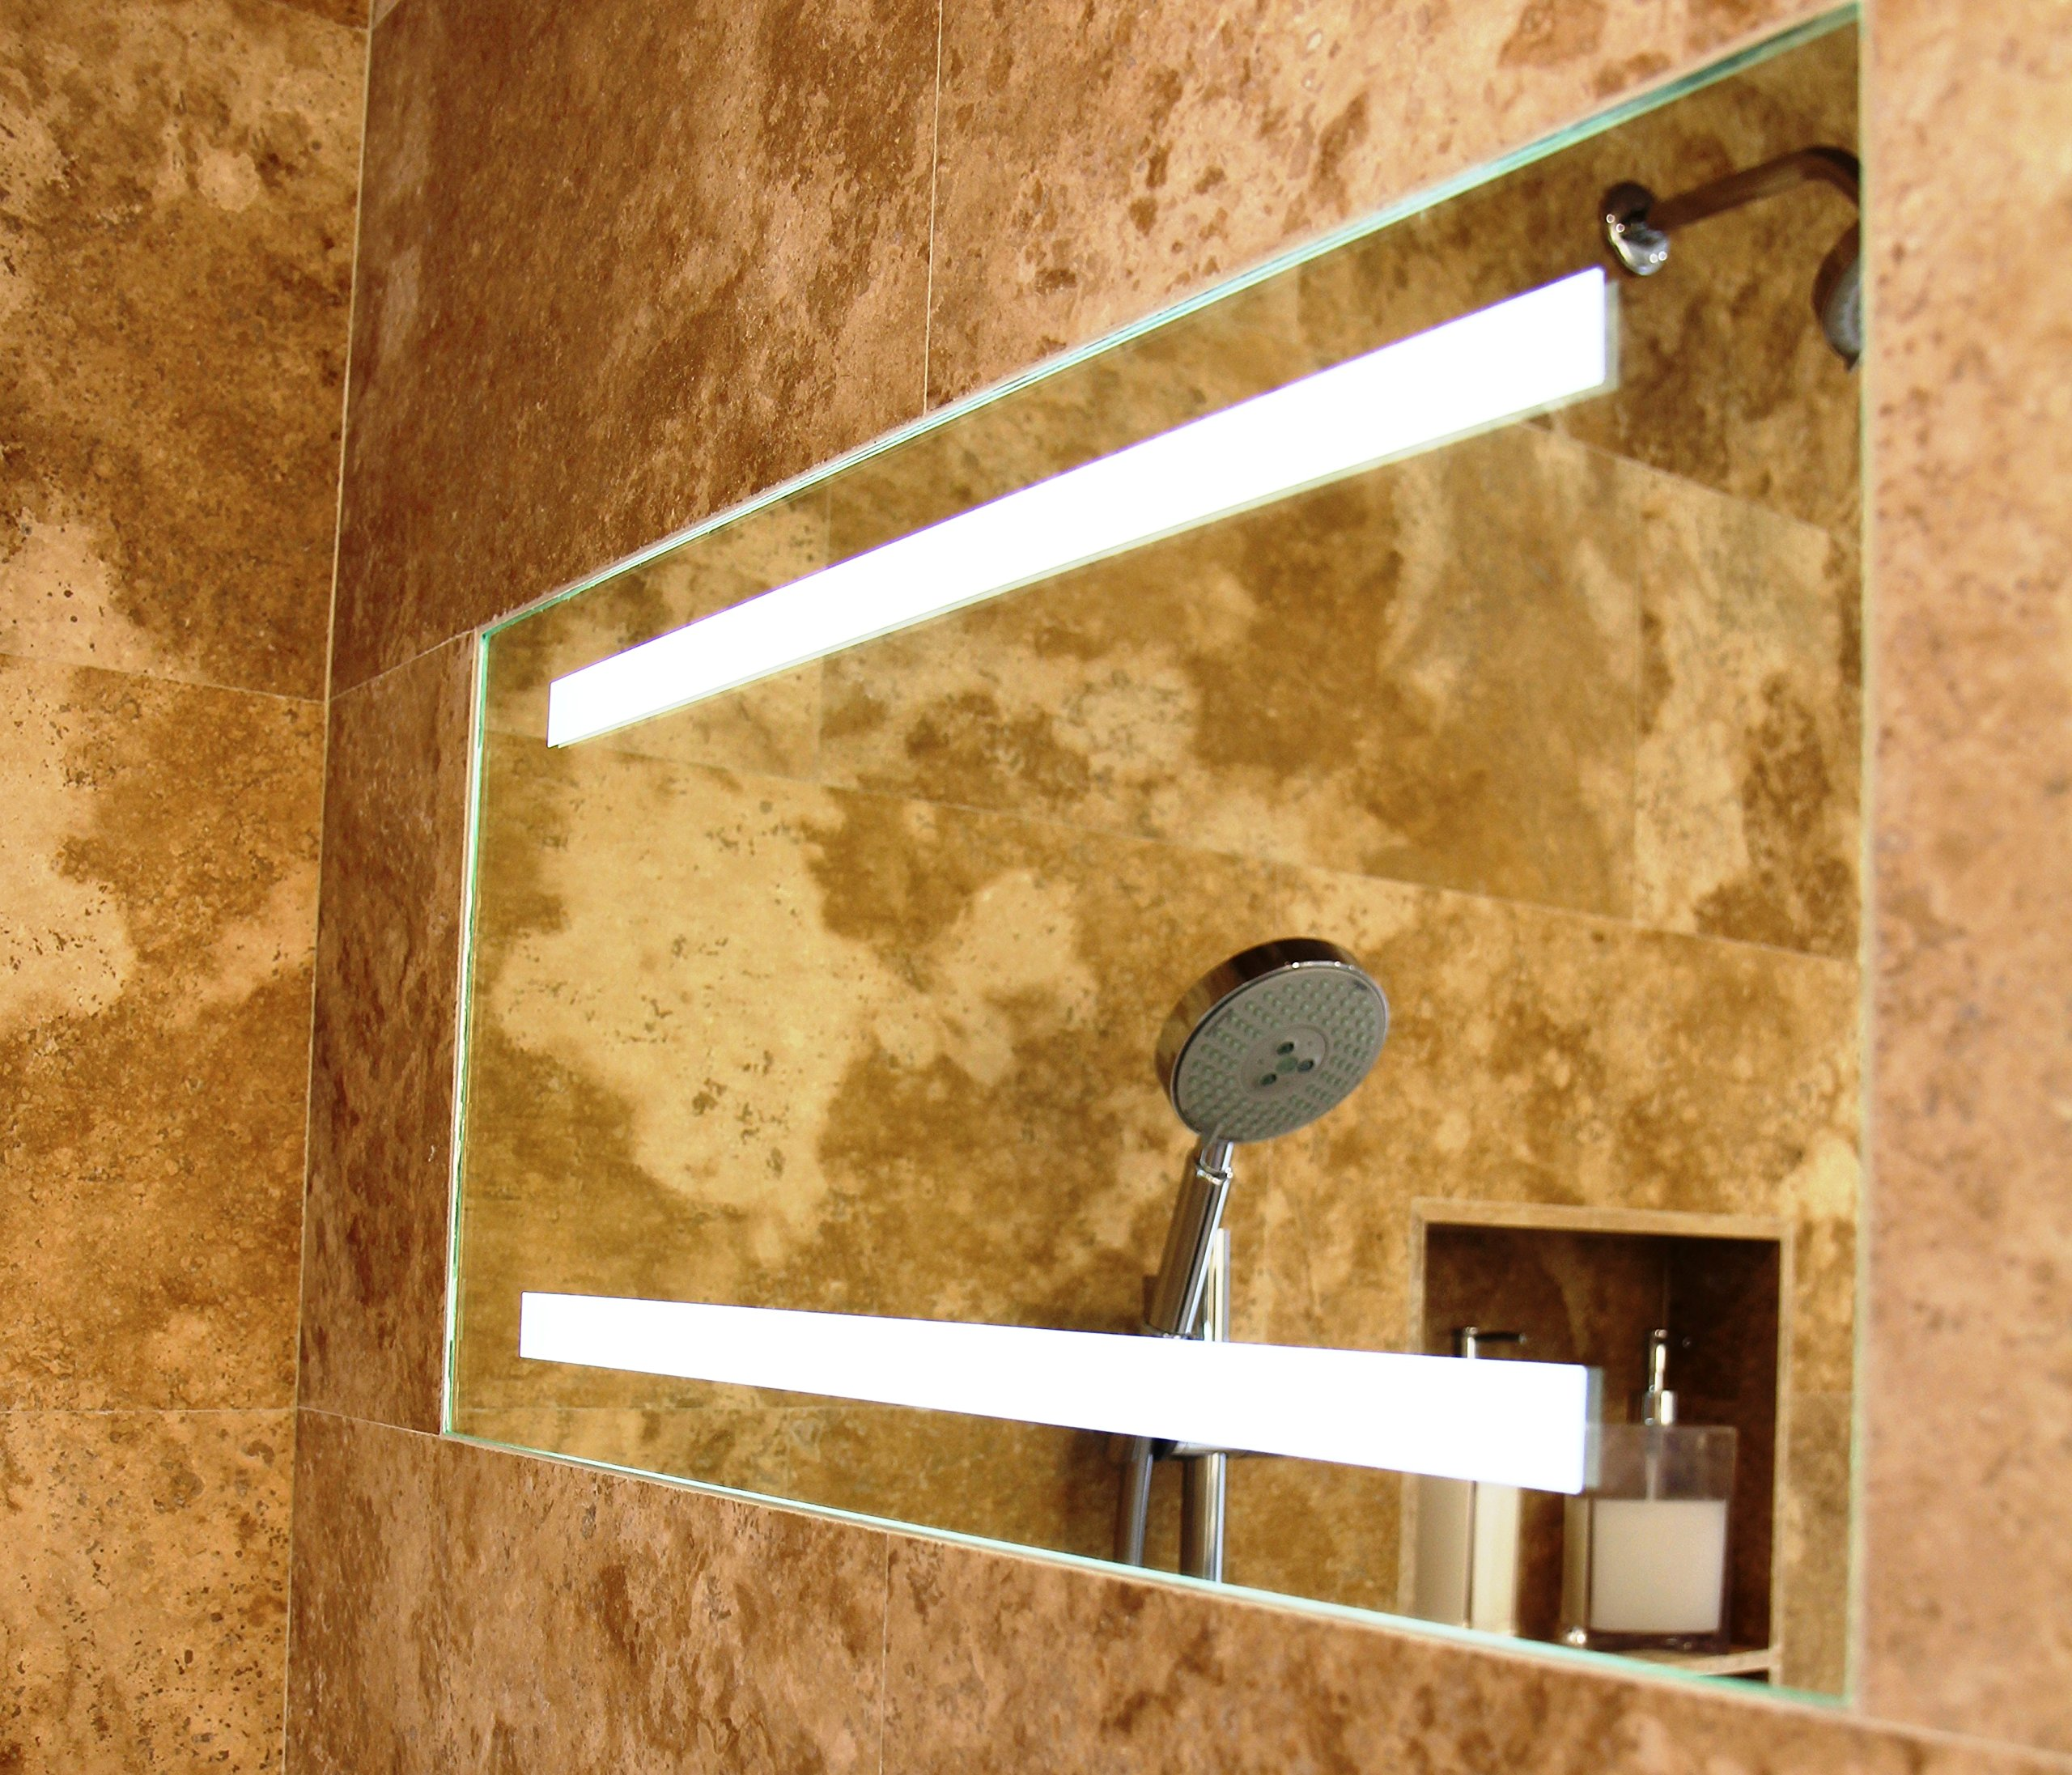 ClearMirror Showerlite (18x18) by ClearMirror (Image #5)